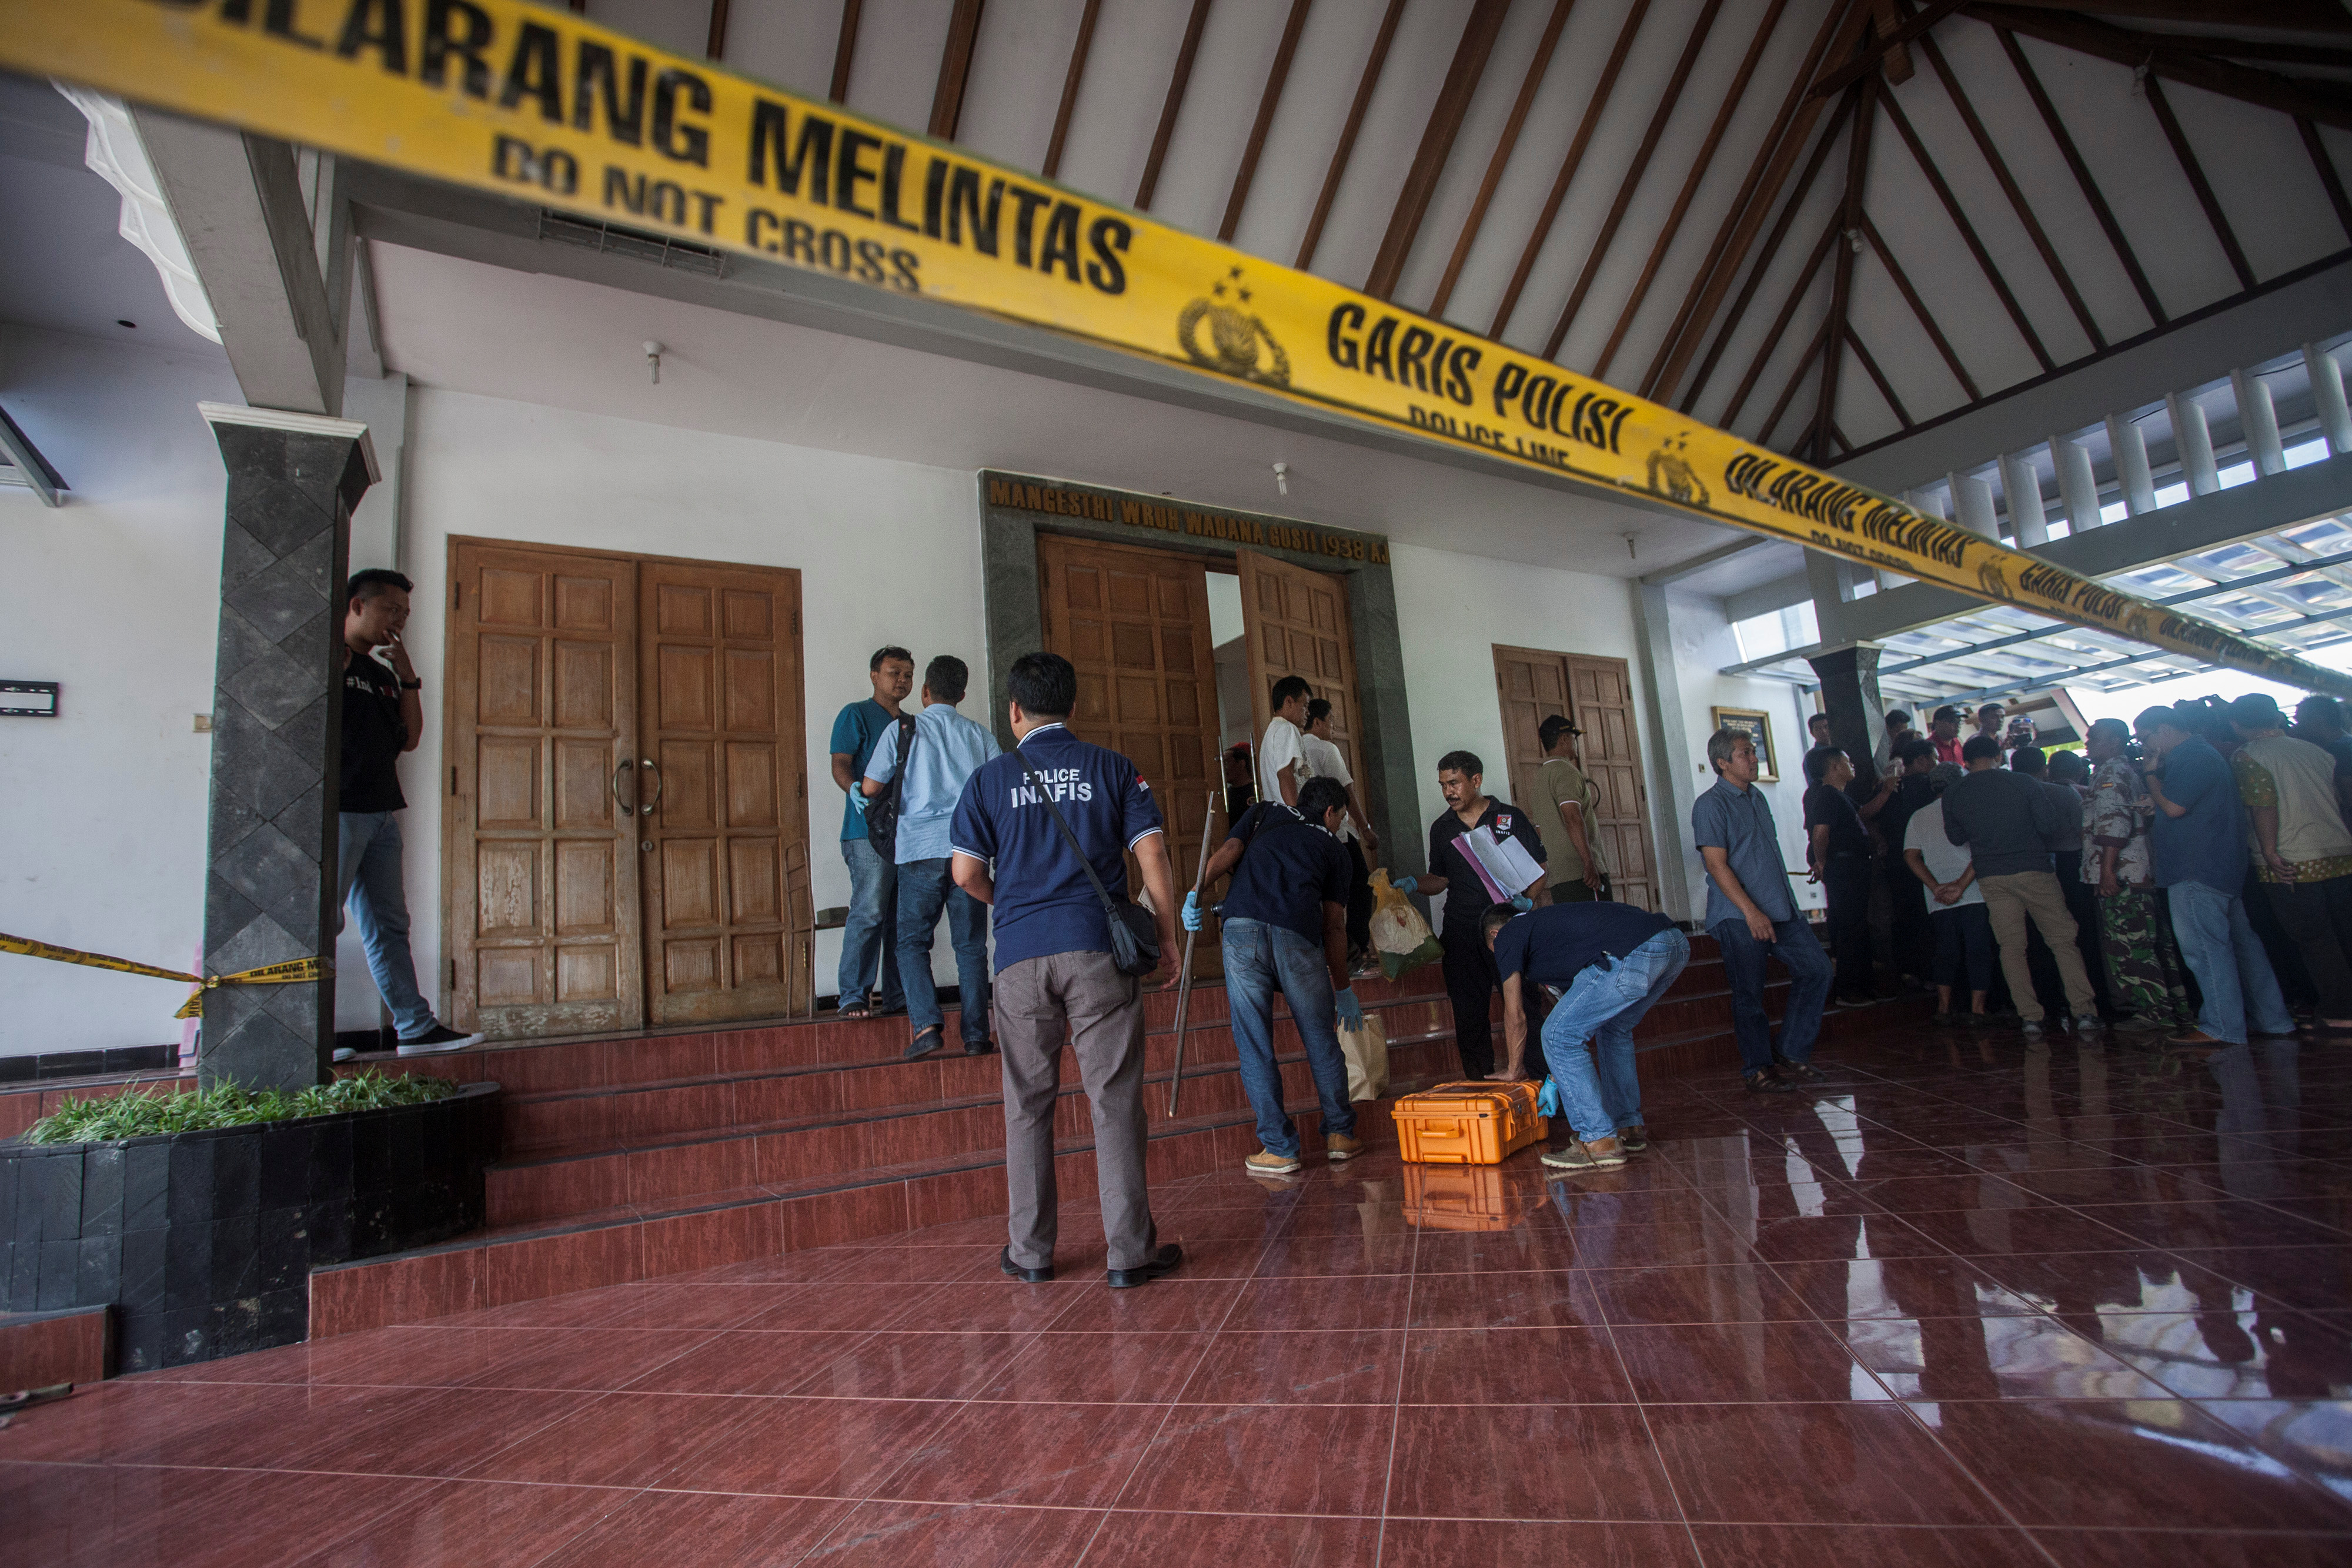 4498609-2018-02-11T061859Z_923197395_RC11C86E32A0_RTRMADP_3_INDONESIA-SECURITY